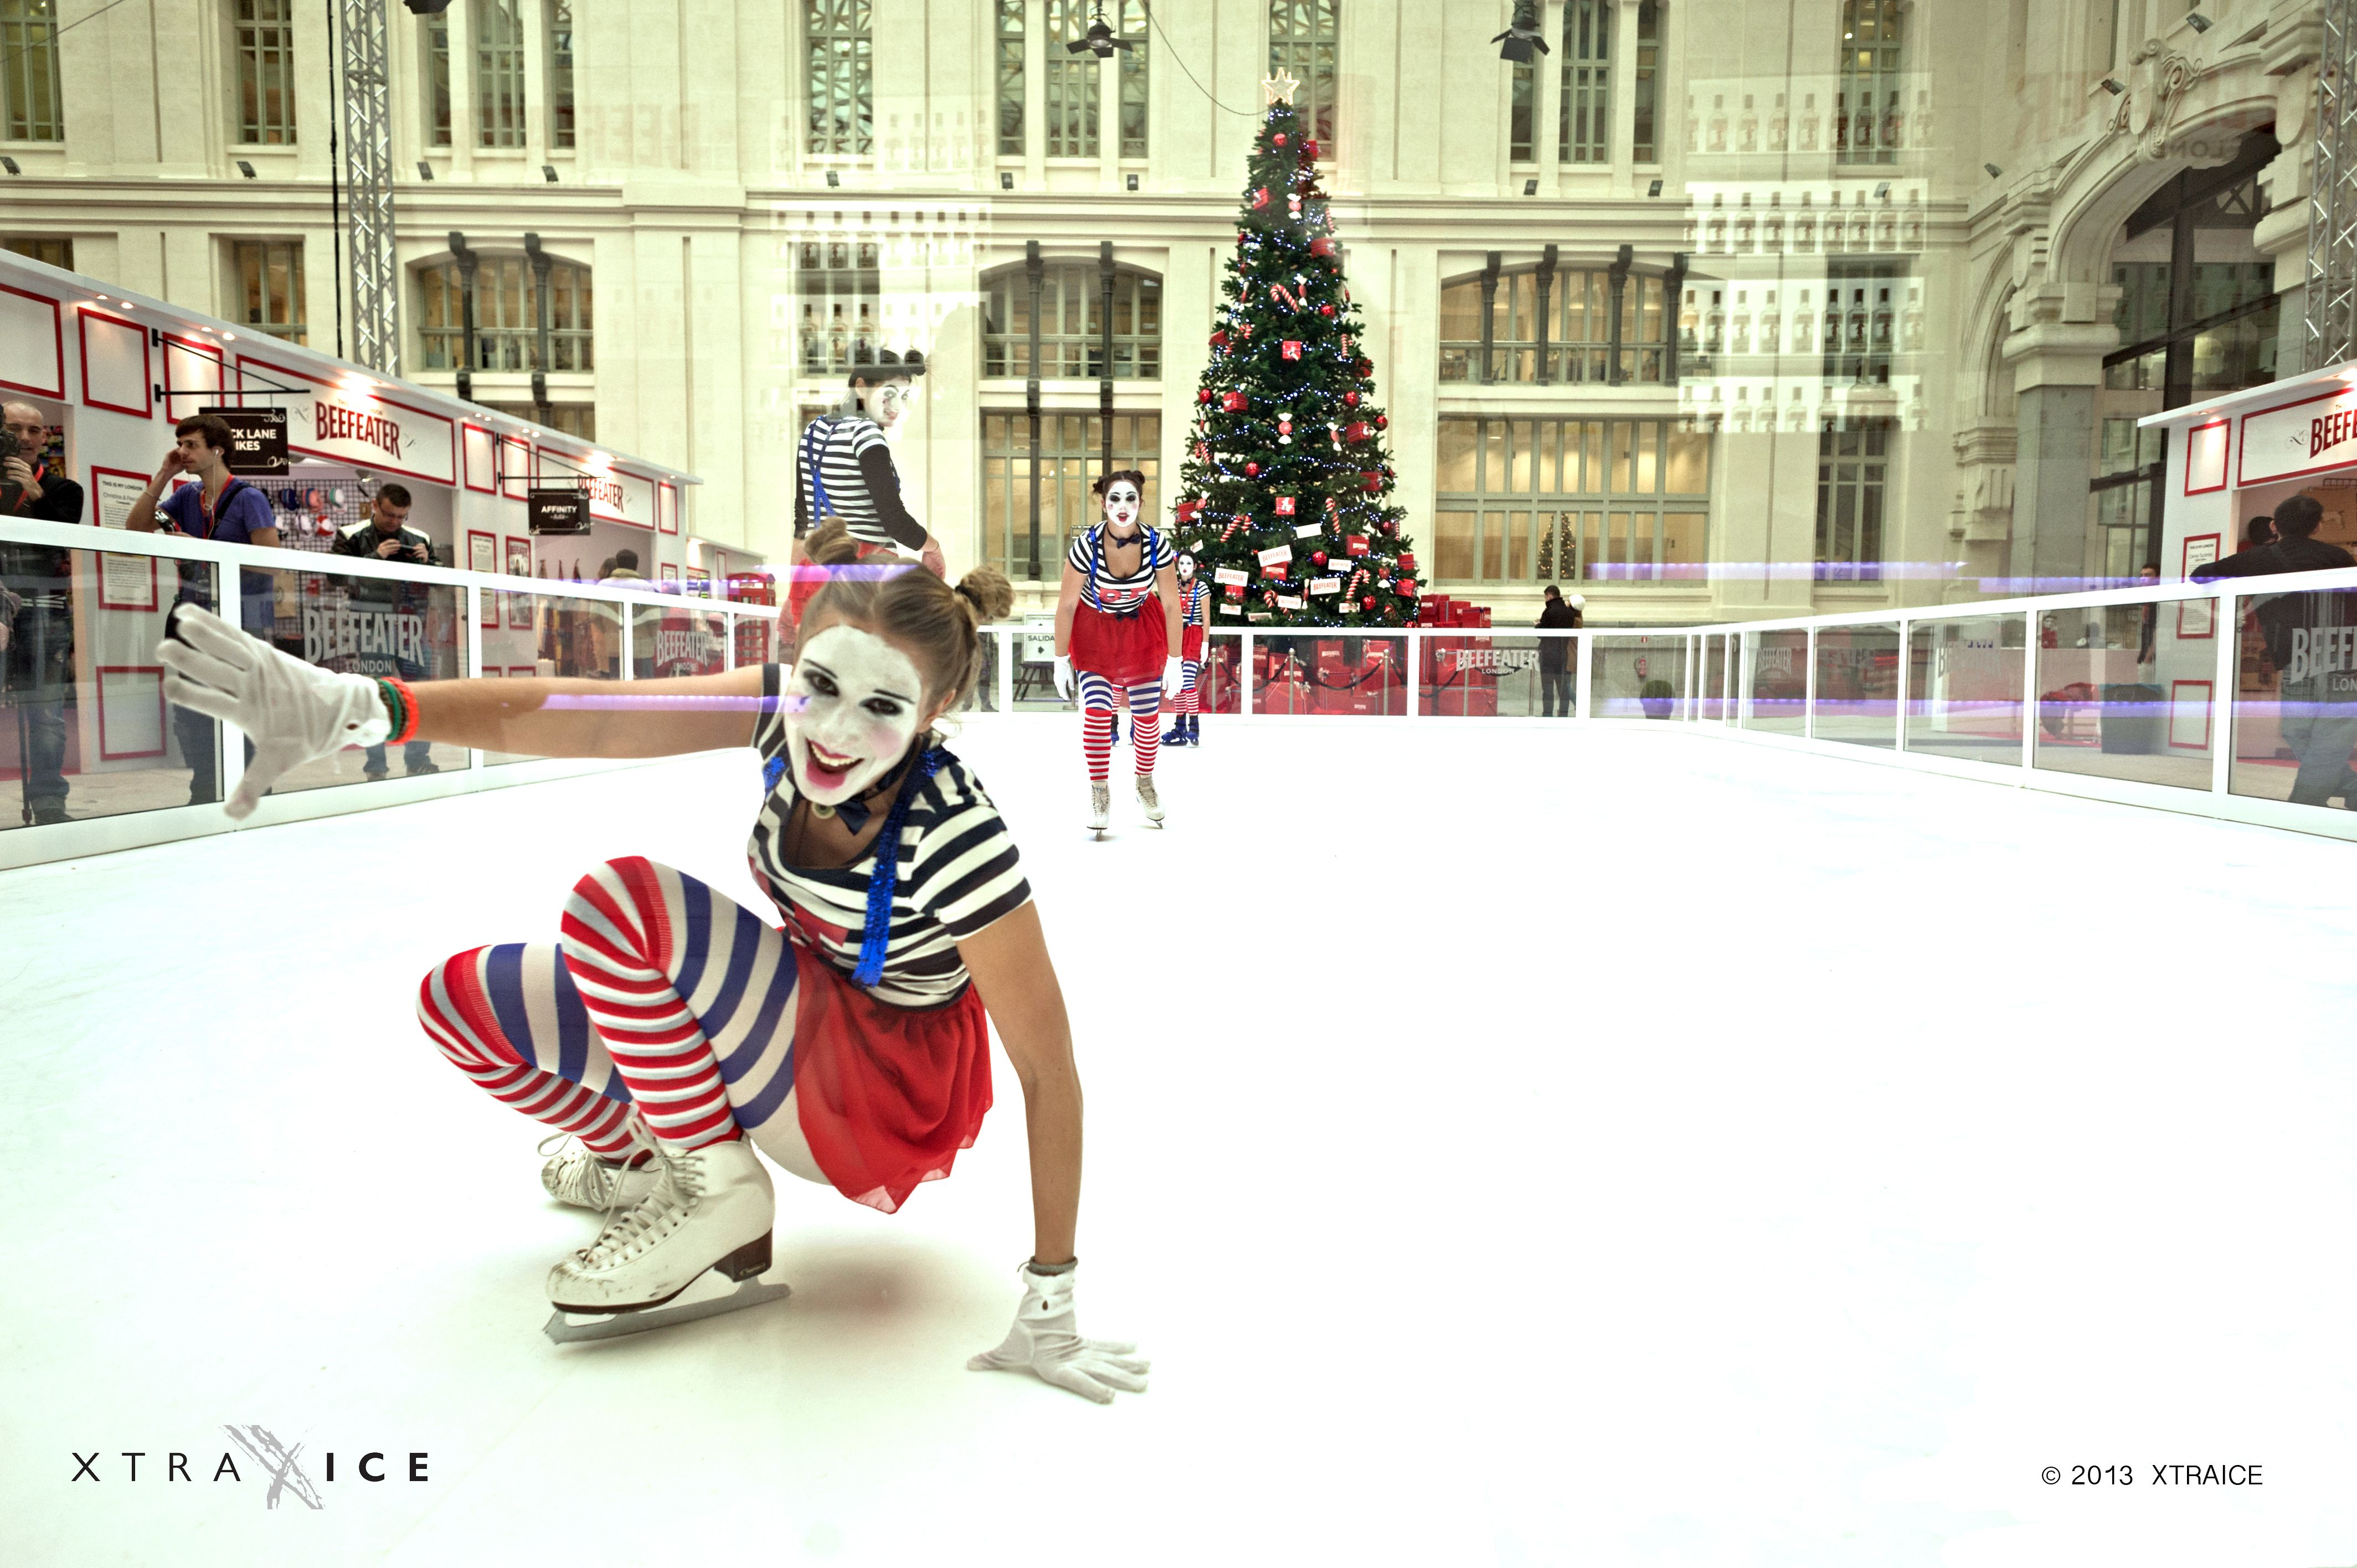 Ice rink in Madrid for Christmas